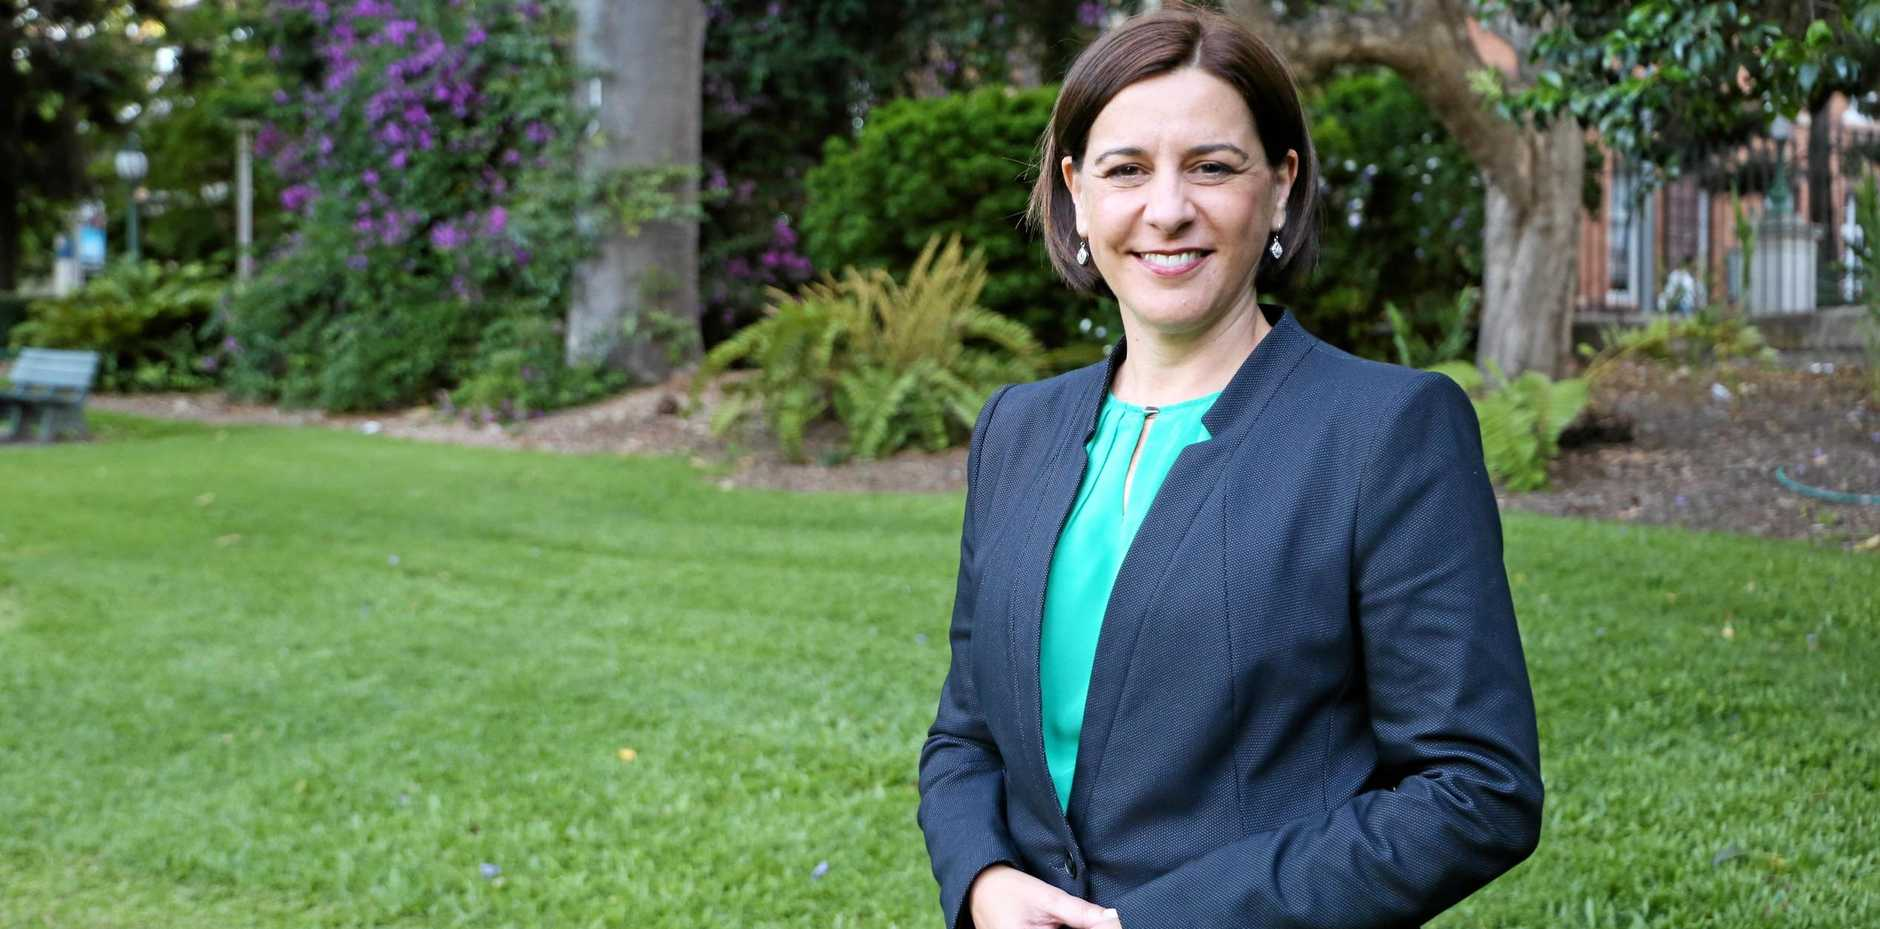 FOLLOW YOUR DREAMS: The Nanango MP and LNP Leader, Deb Frecklington, sheds light on success.